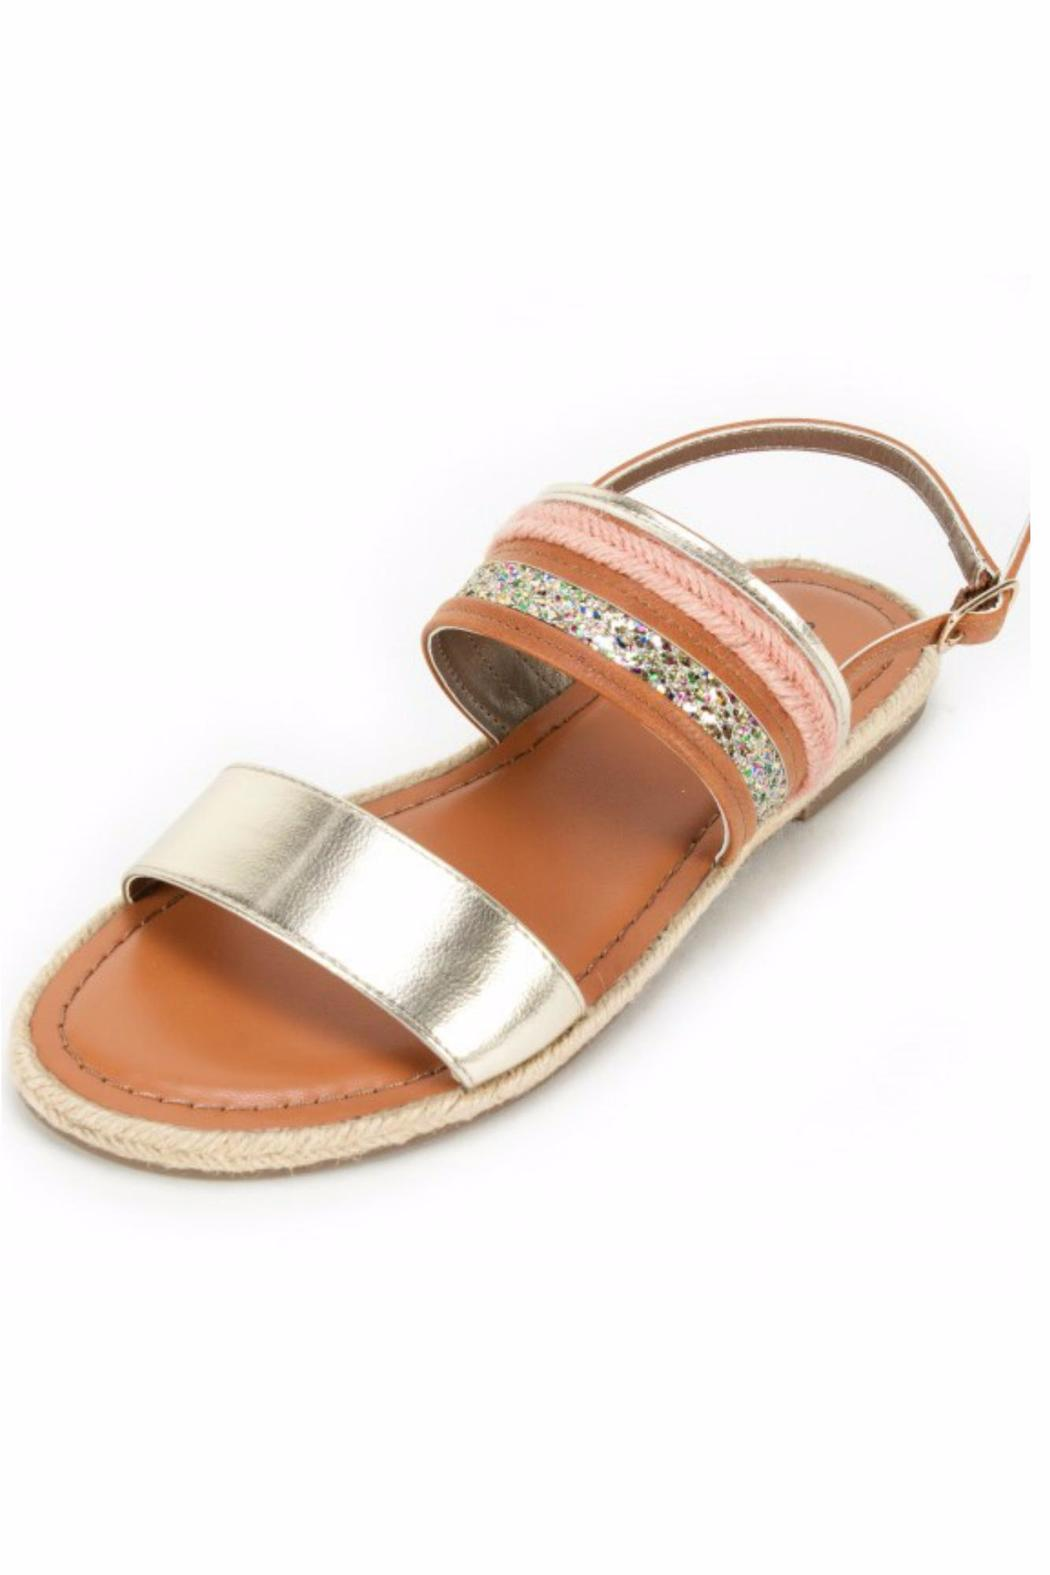 67a2b7bd778c4 7 Dials Rikki Embellished Sandal from Nashville by JeweLL Fashion ...